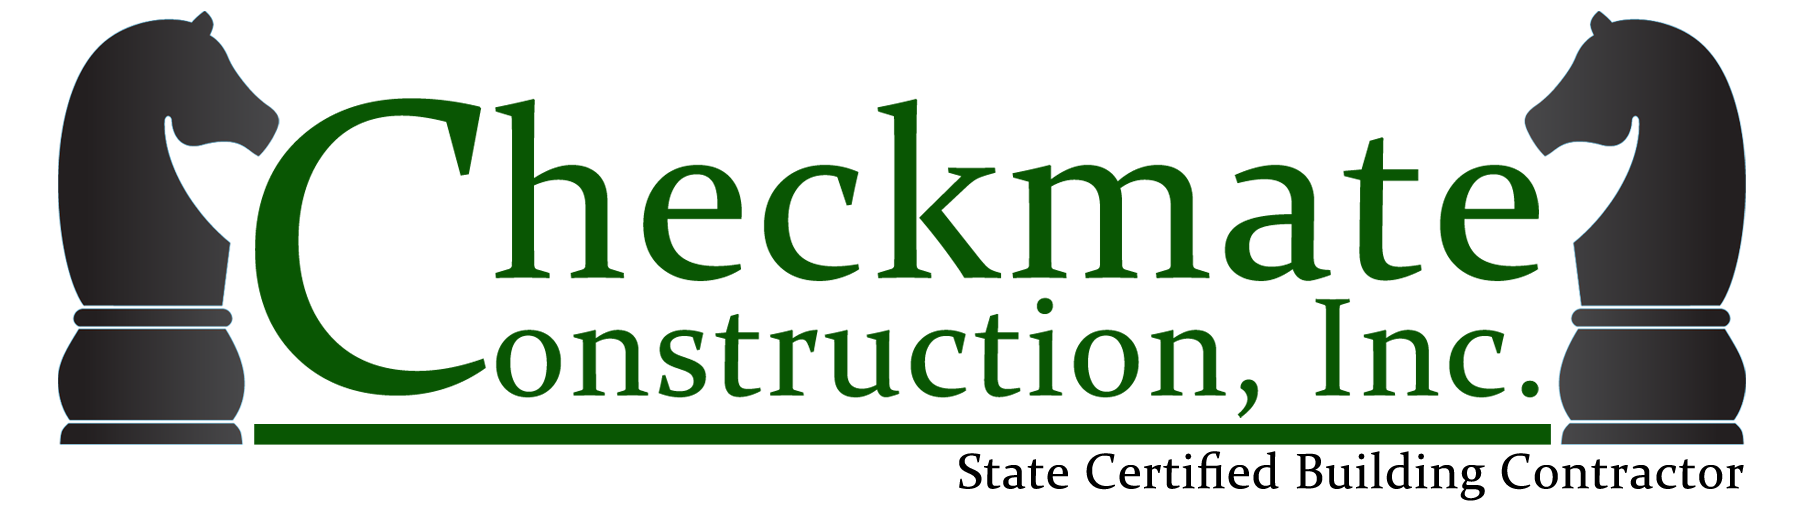 Checkmate Construction